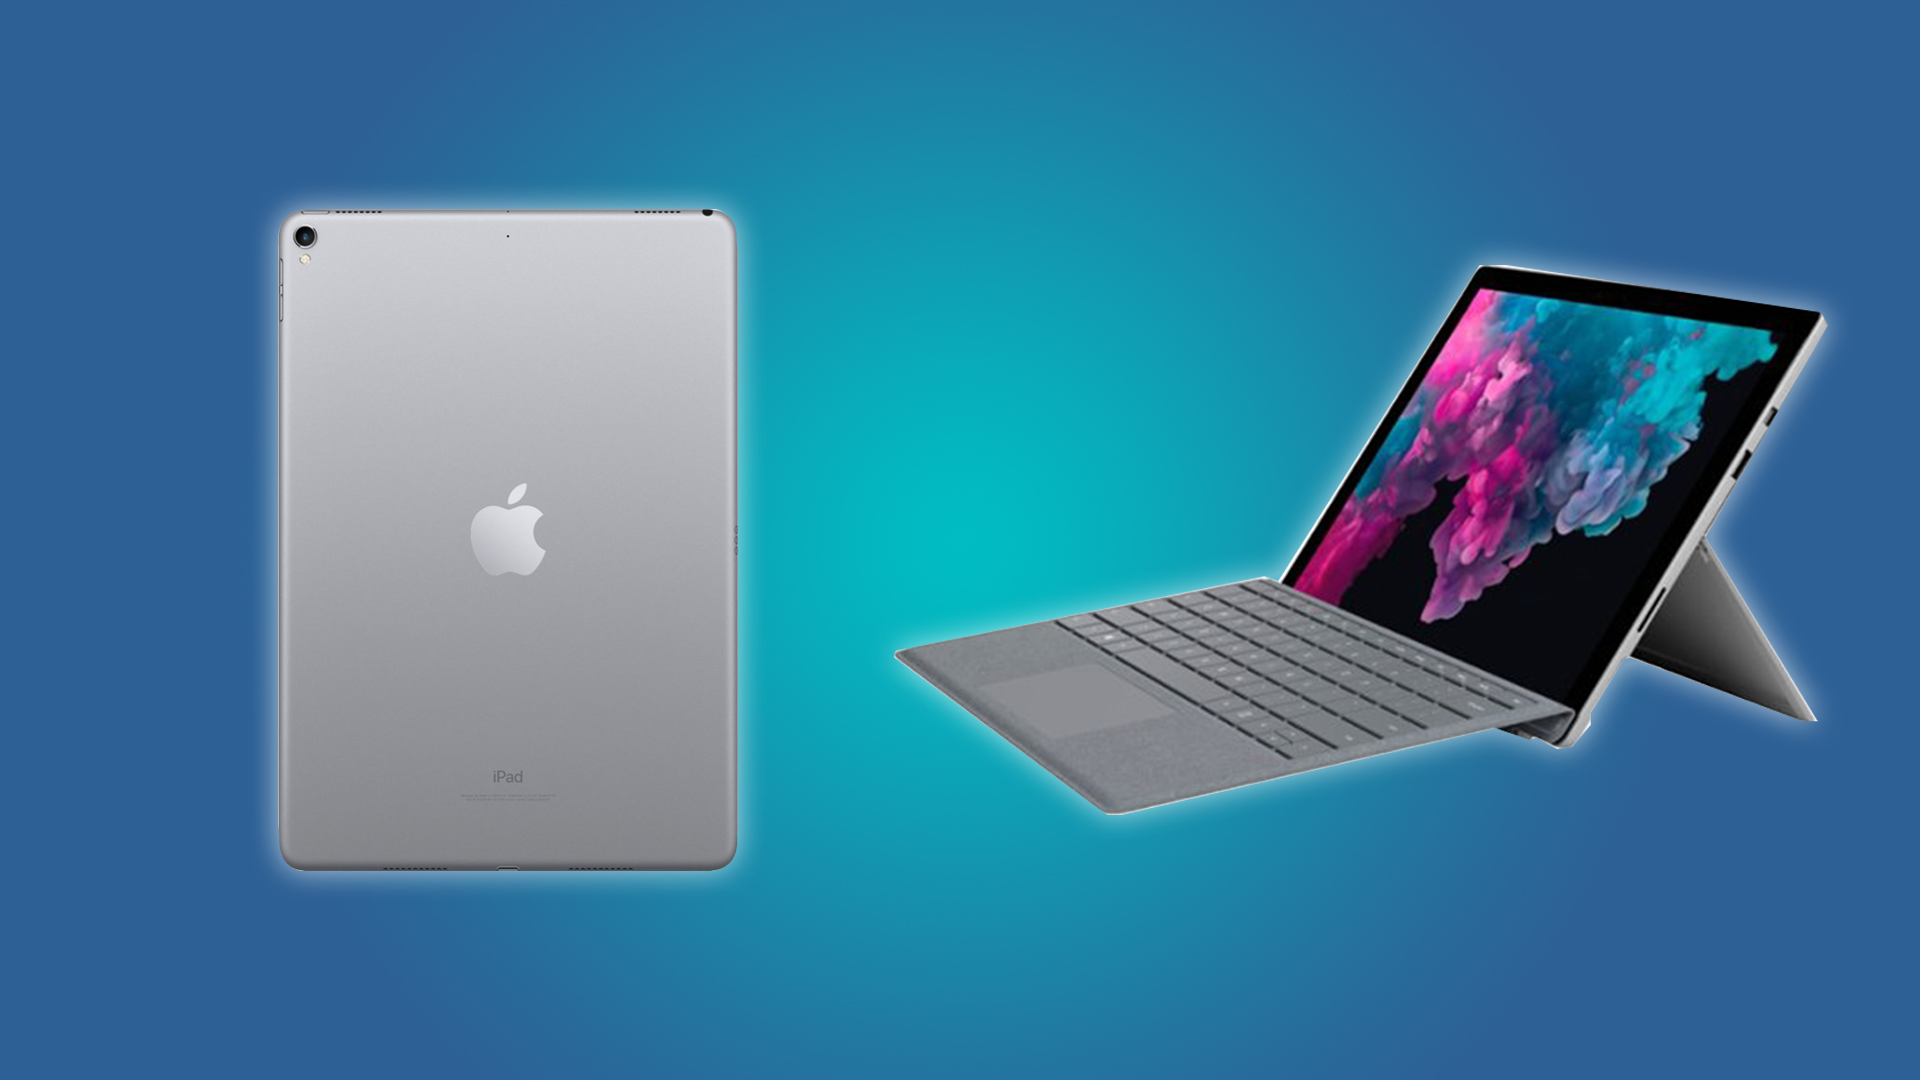 The iPad Pro and the Microsoft Surface Tablet